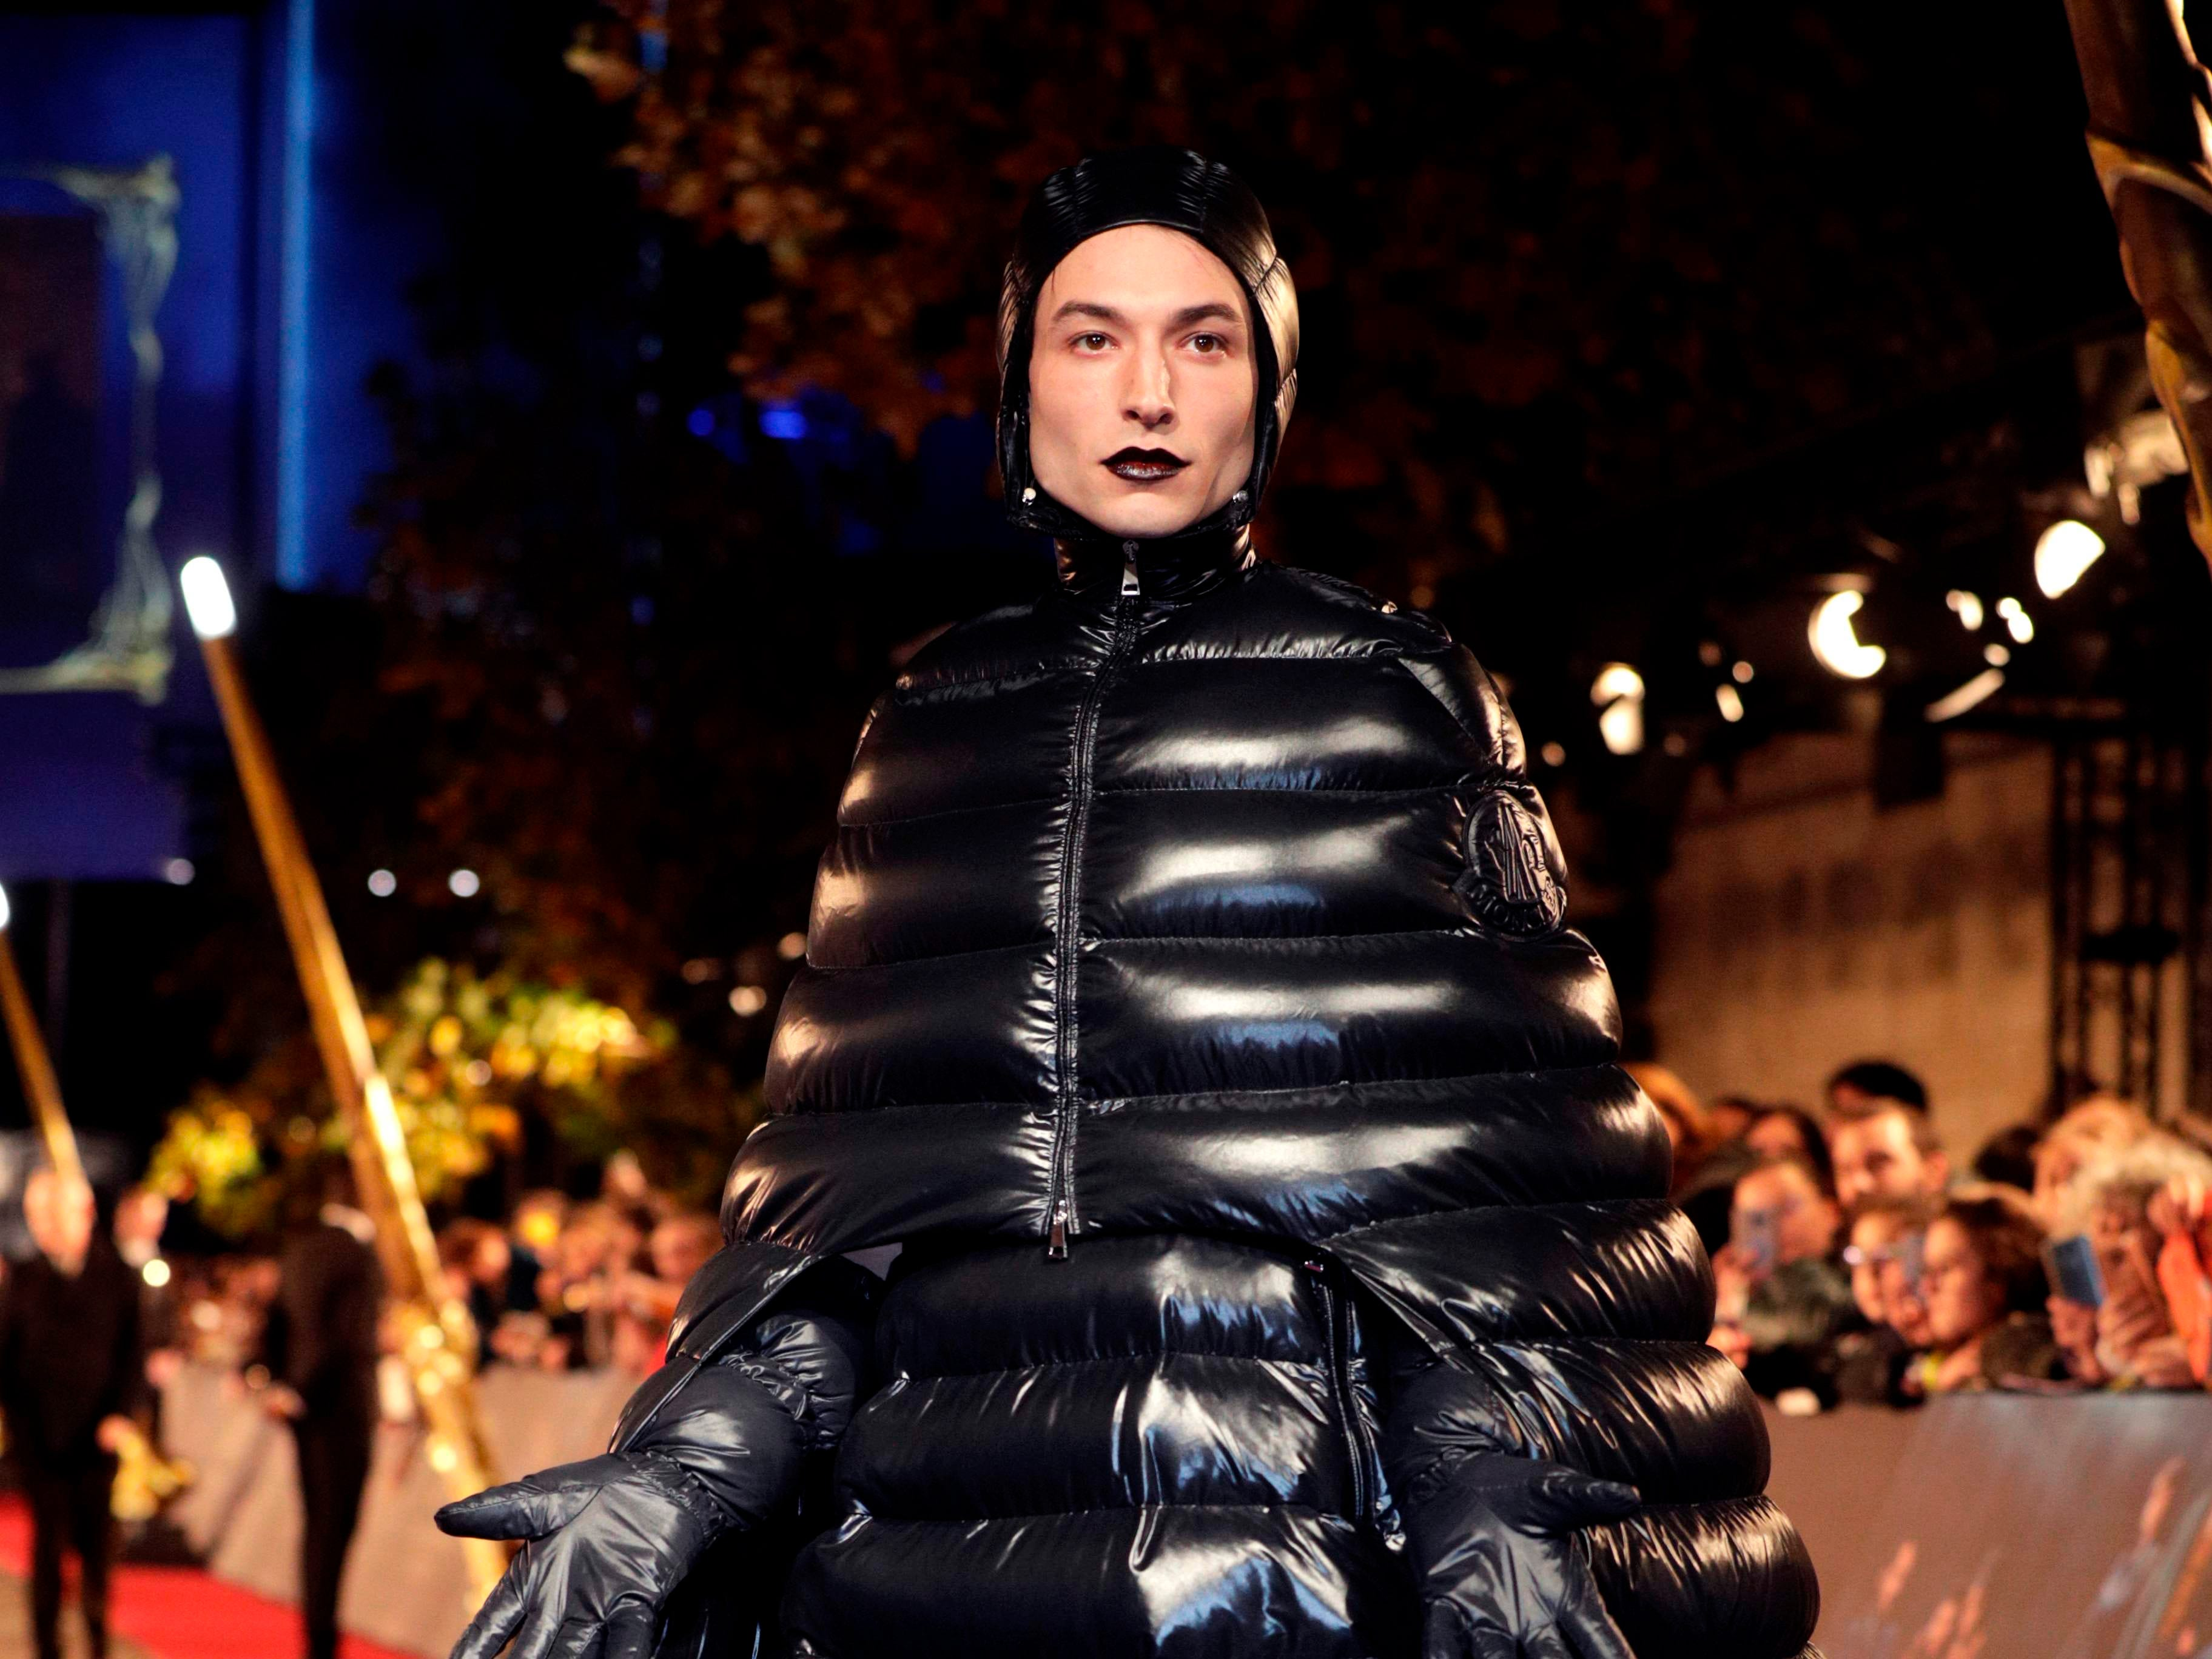 American actor and singer Ezra Miller poses for photographers as he arrives for the premier of the fantasy film 'Fantastic Beasts: The Crimes of Grindelwald' in Paris on November 8, 2018. (Photo by Geoffroy VAN DER HASSELT / AFP)GEOFFROY VAN DER HASSELT/AFP/Getty Images ORIG FILE ID: AFP_1AO87D